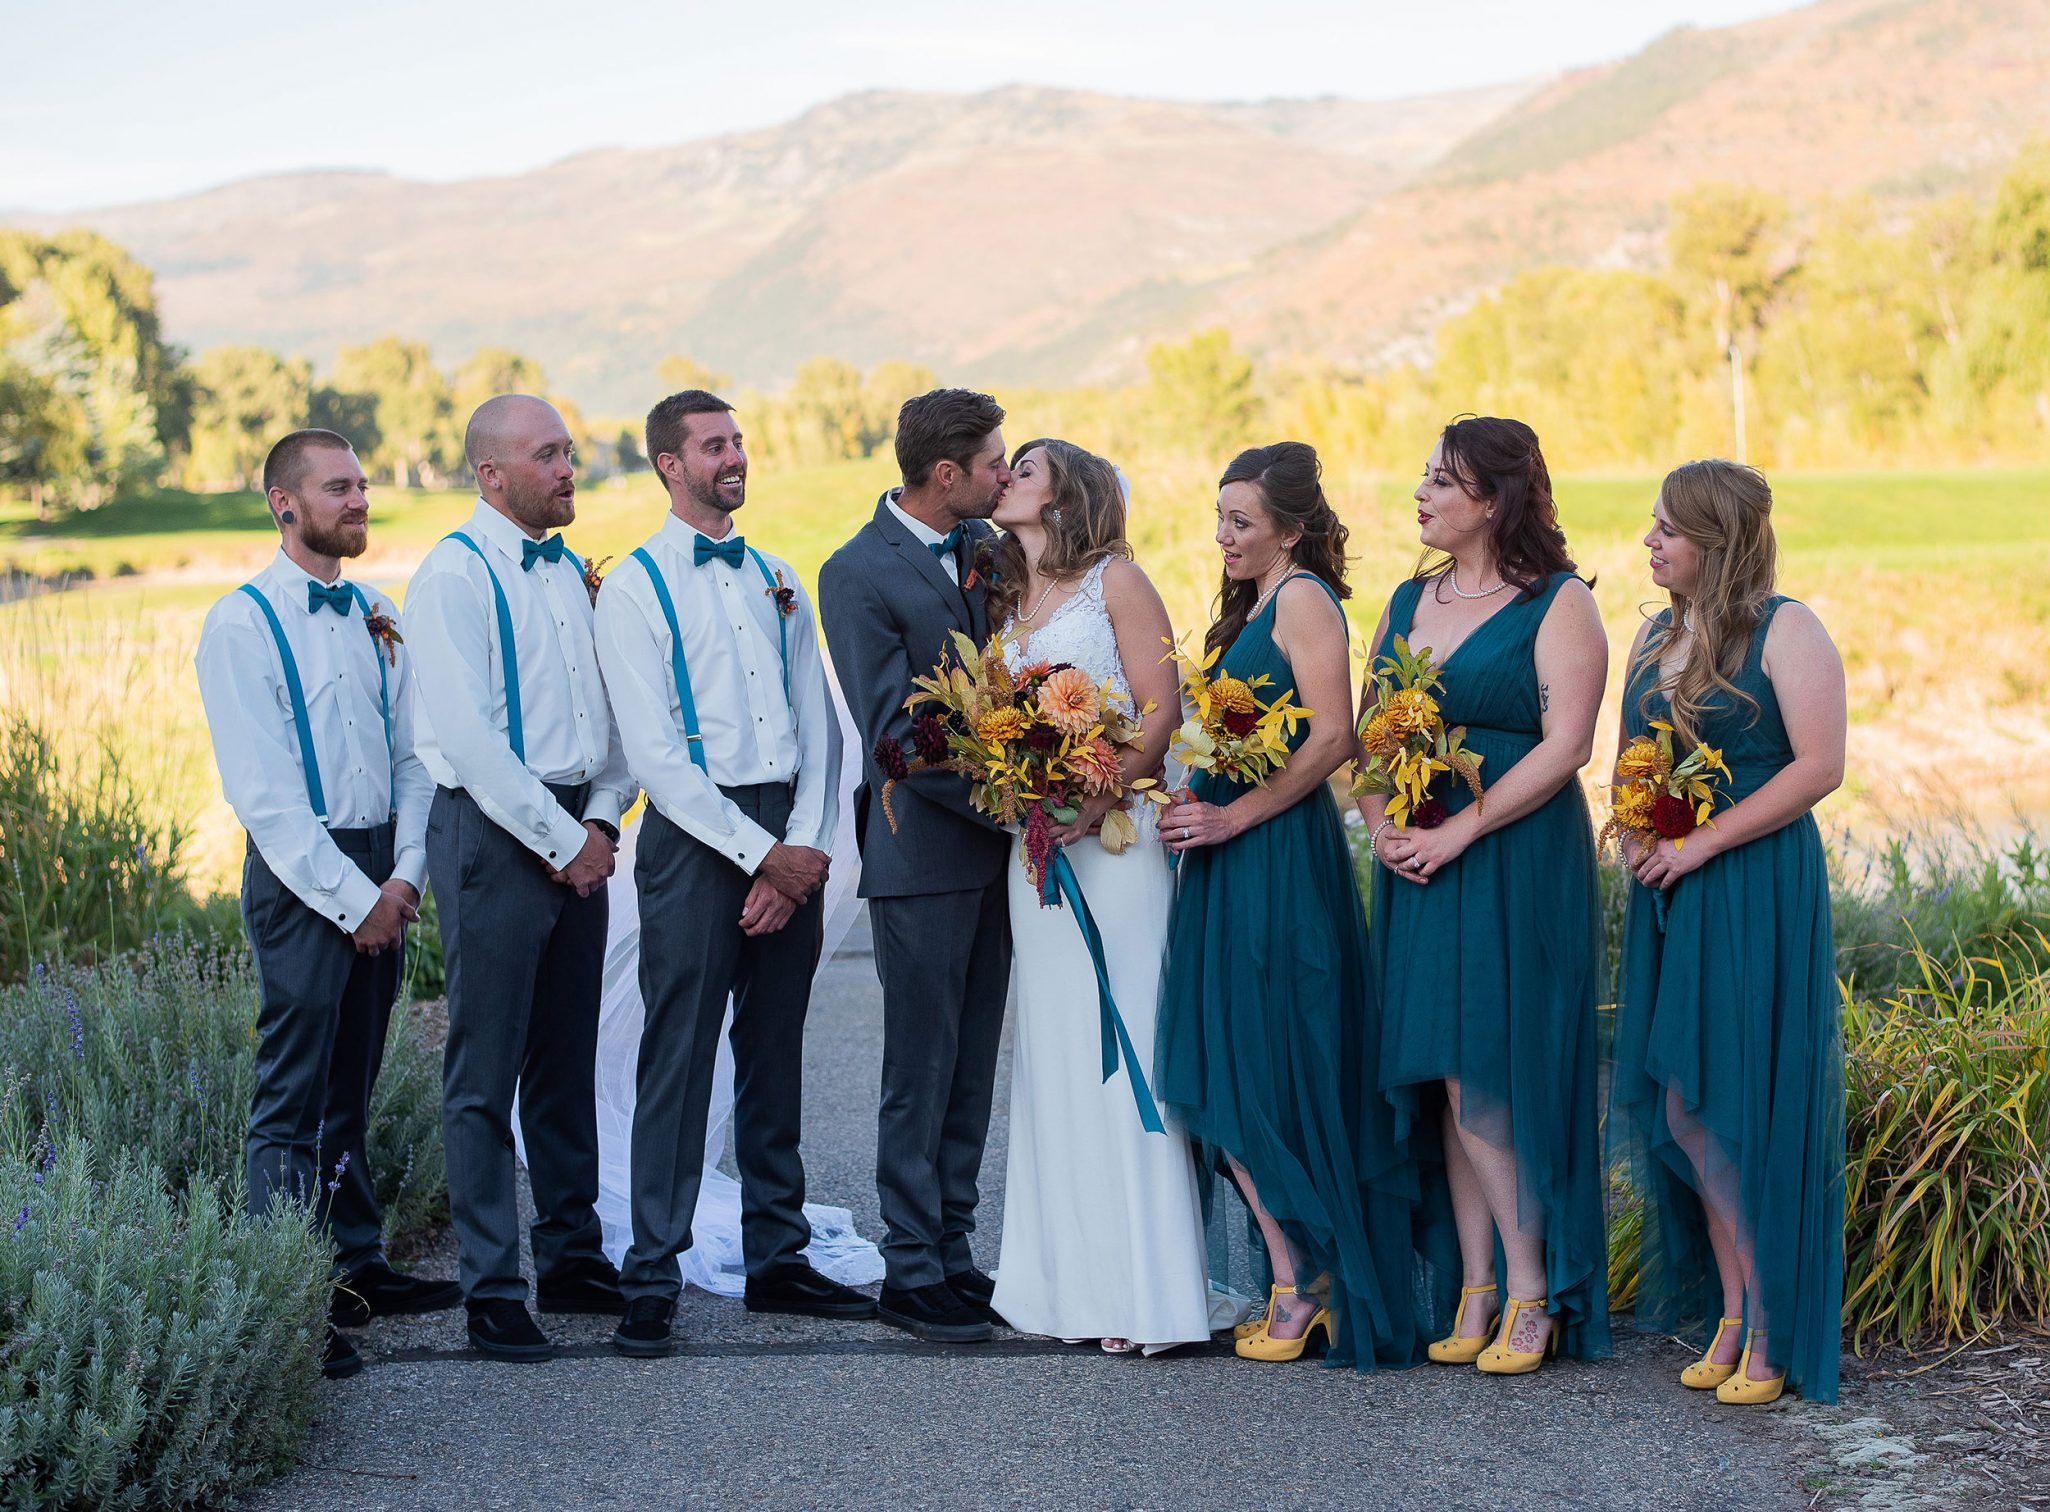 Vintage glam wedding party at Dalton Ranch Golf Club, Durango Colorado